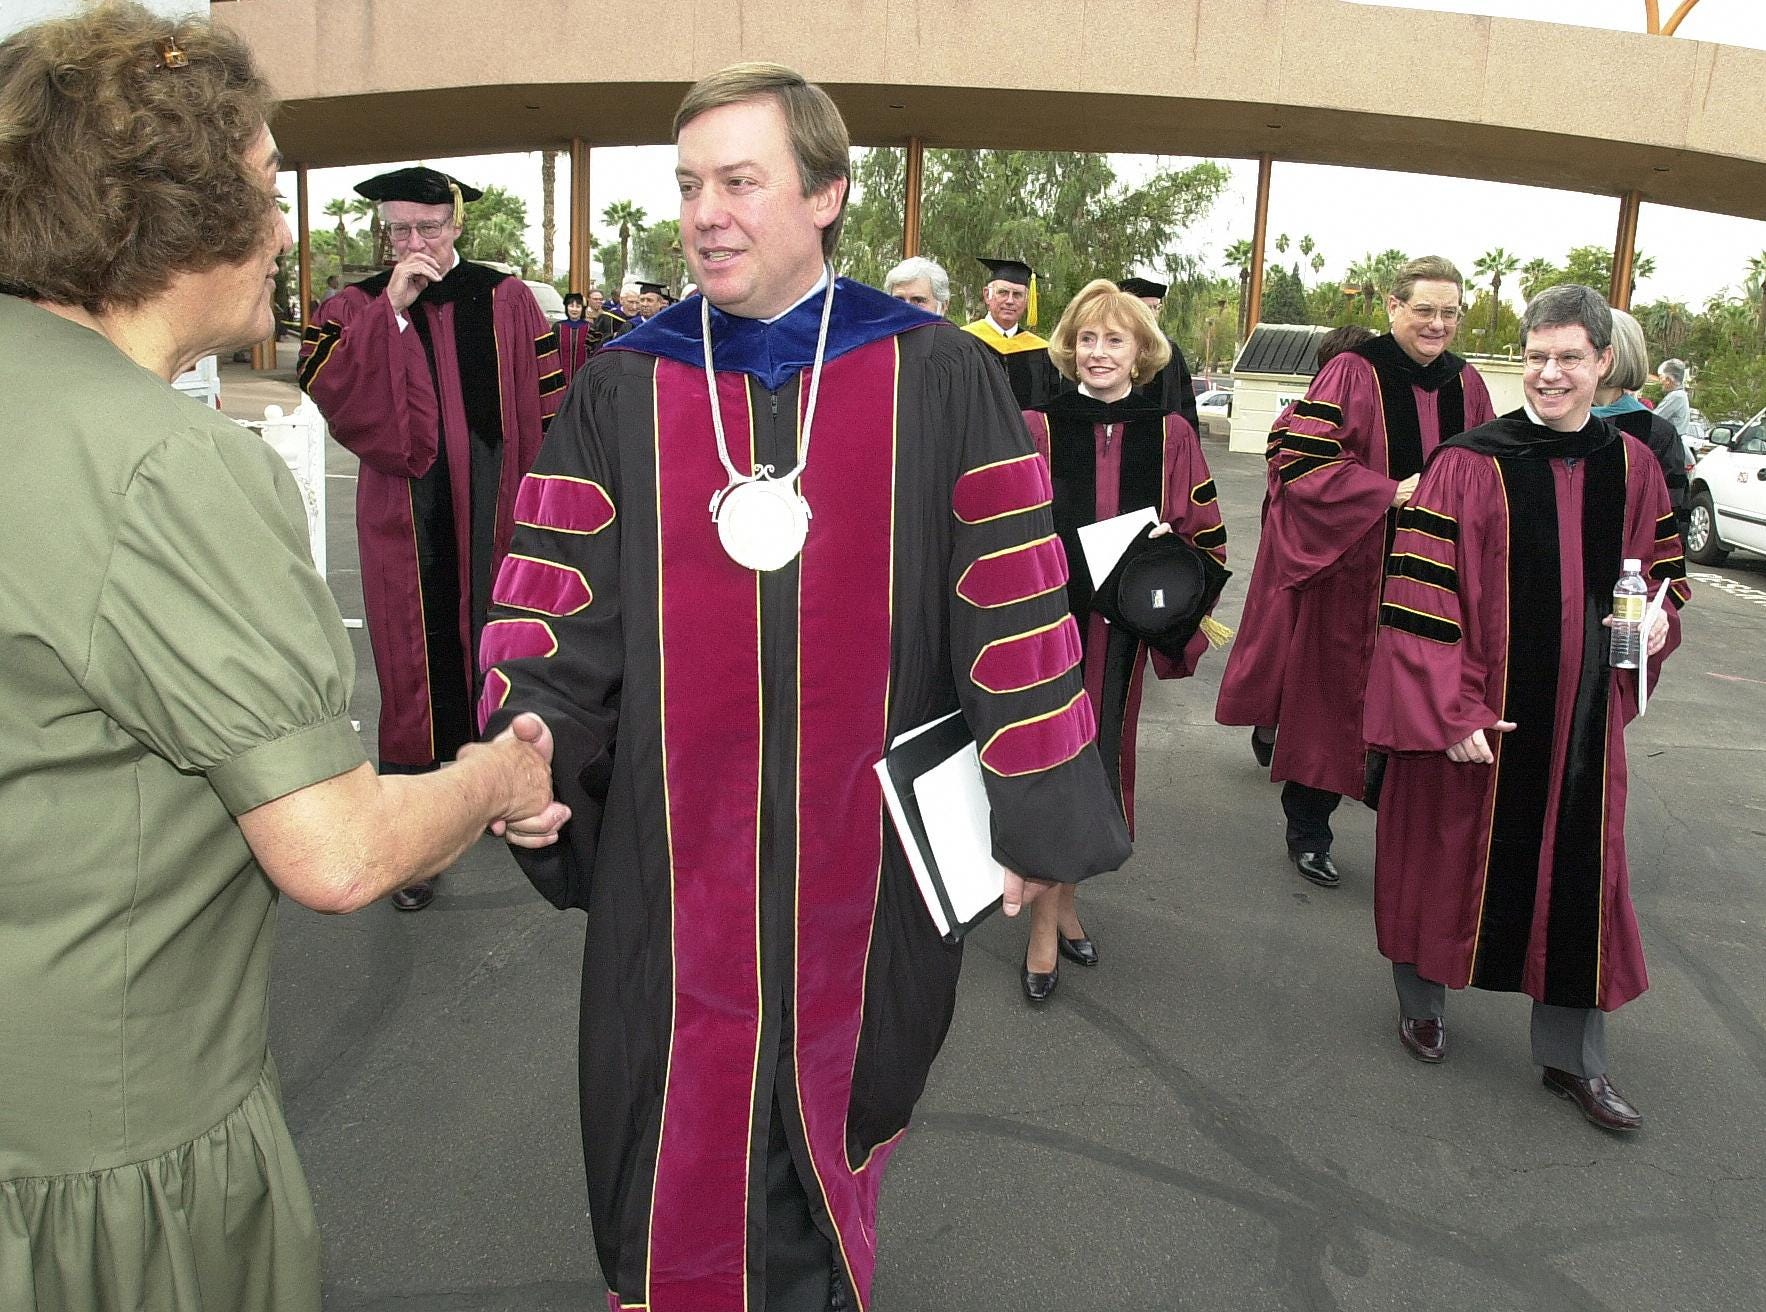 A well-wisher congratulates ASU President Michael Crow after a 2002 inauguration ceremony at the Tempe campus.